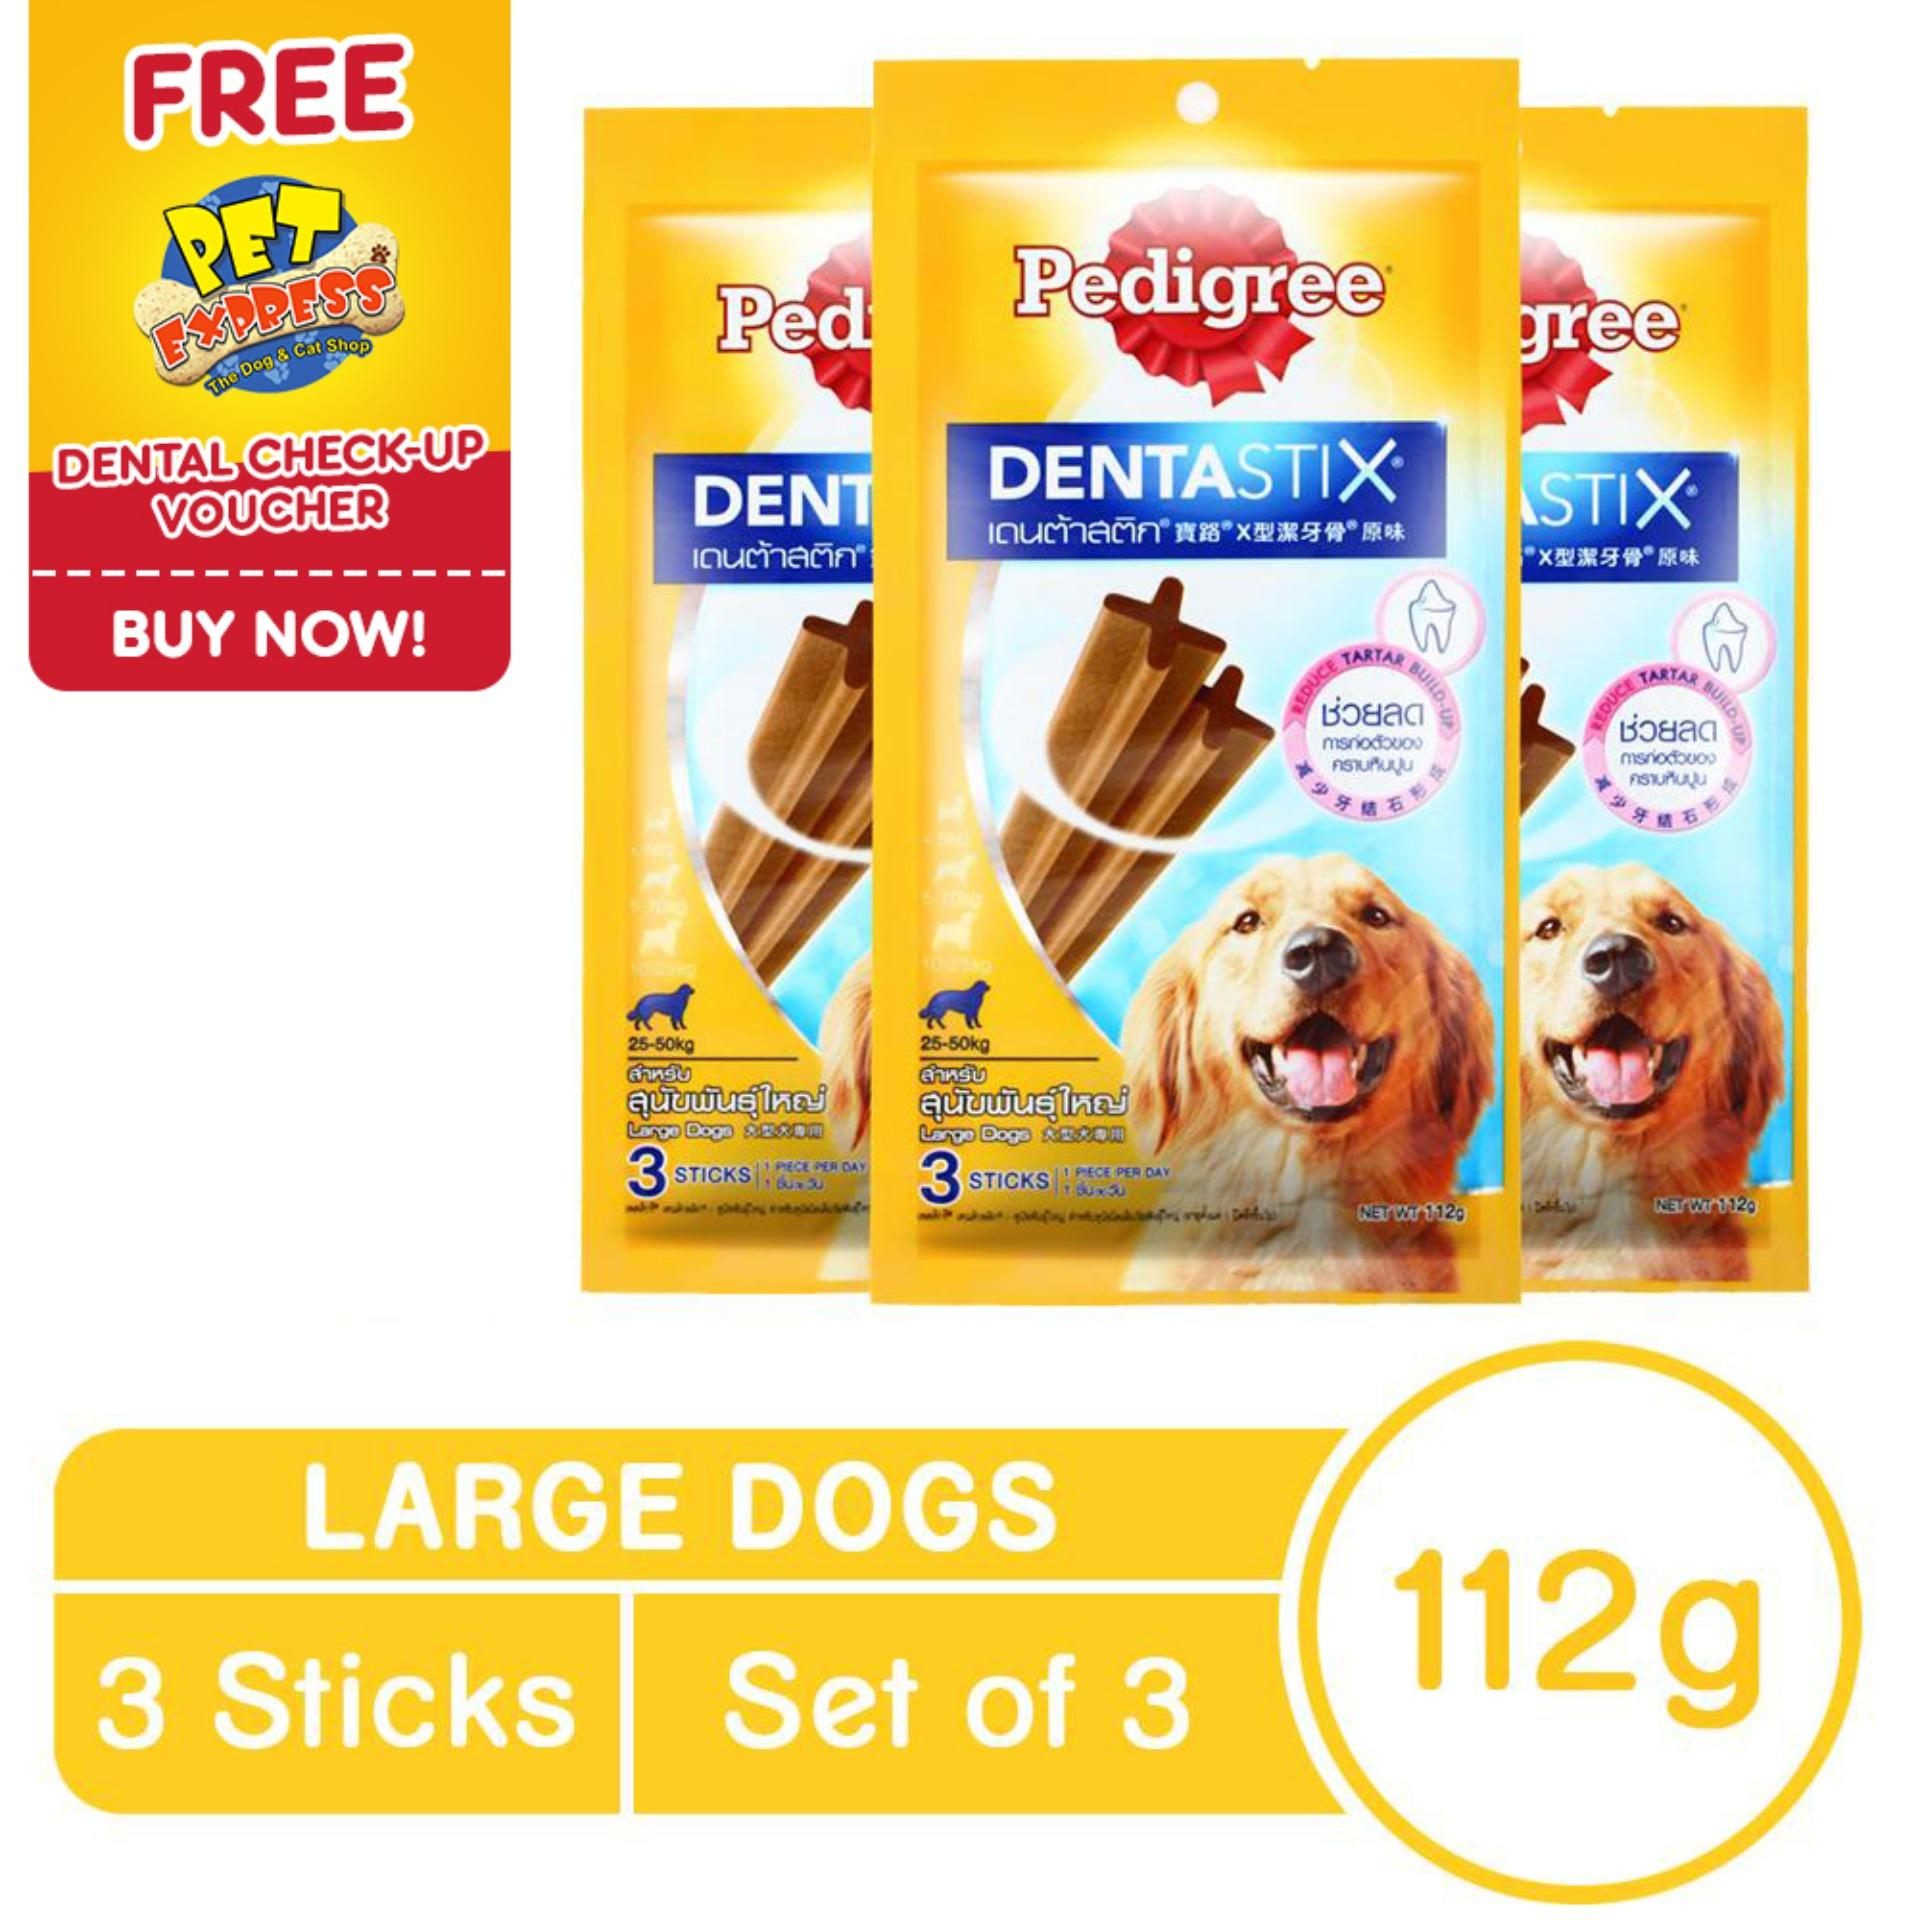 Dog Chew for sale - Dental Chew Online Deals & Prices in